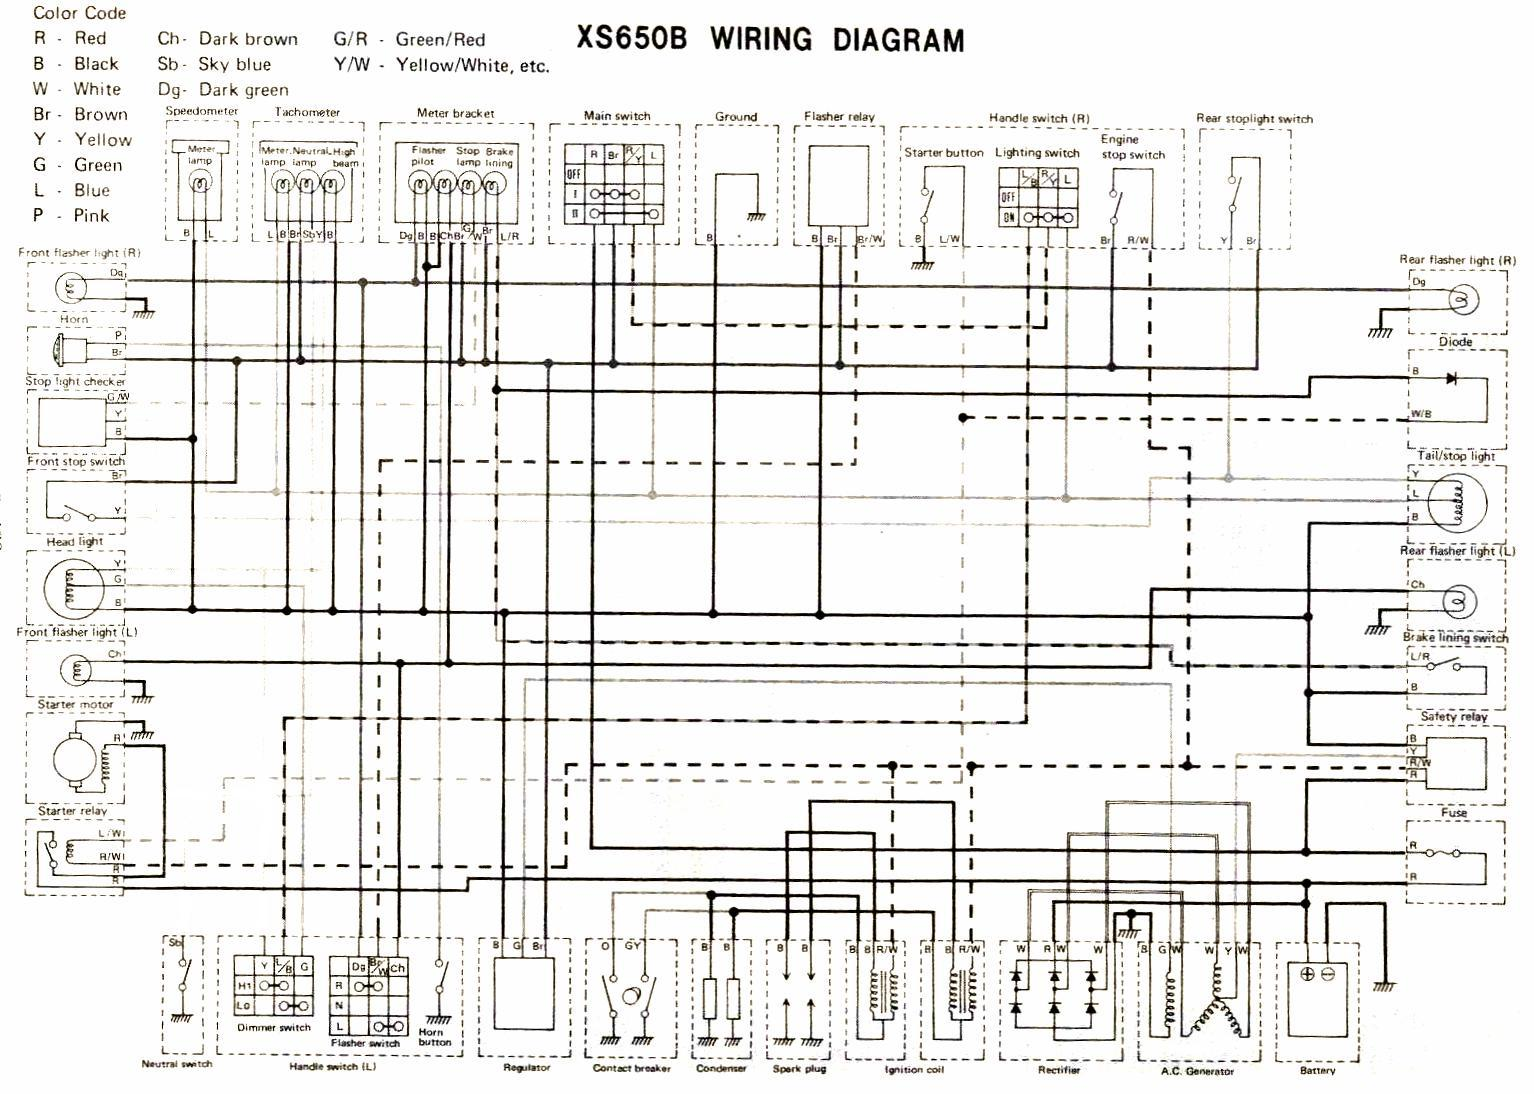 wiring diagrams yamaha motorcycle wiring diagrams 1975 xs650b jpg